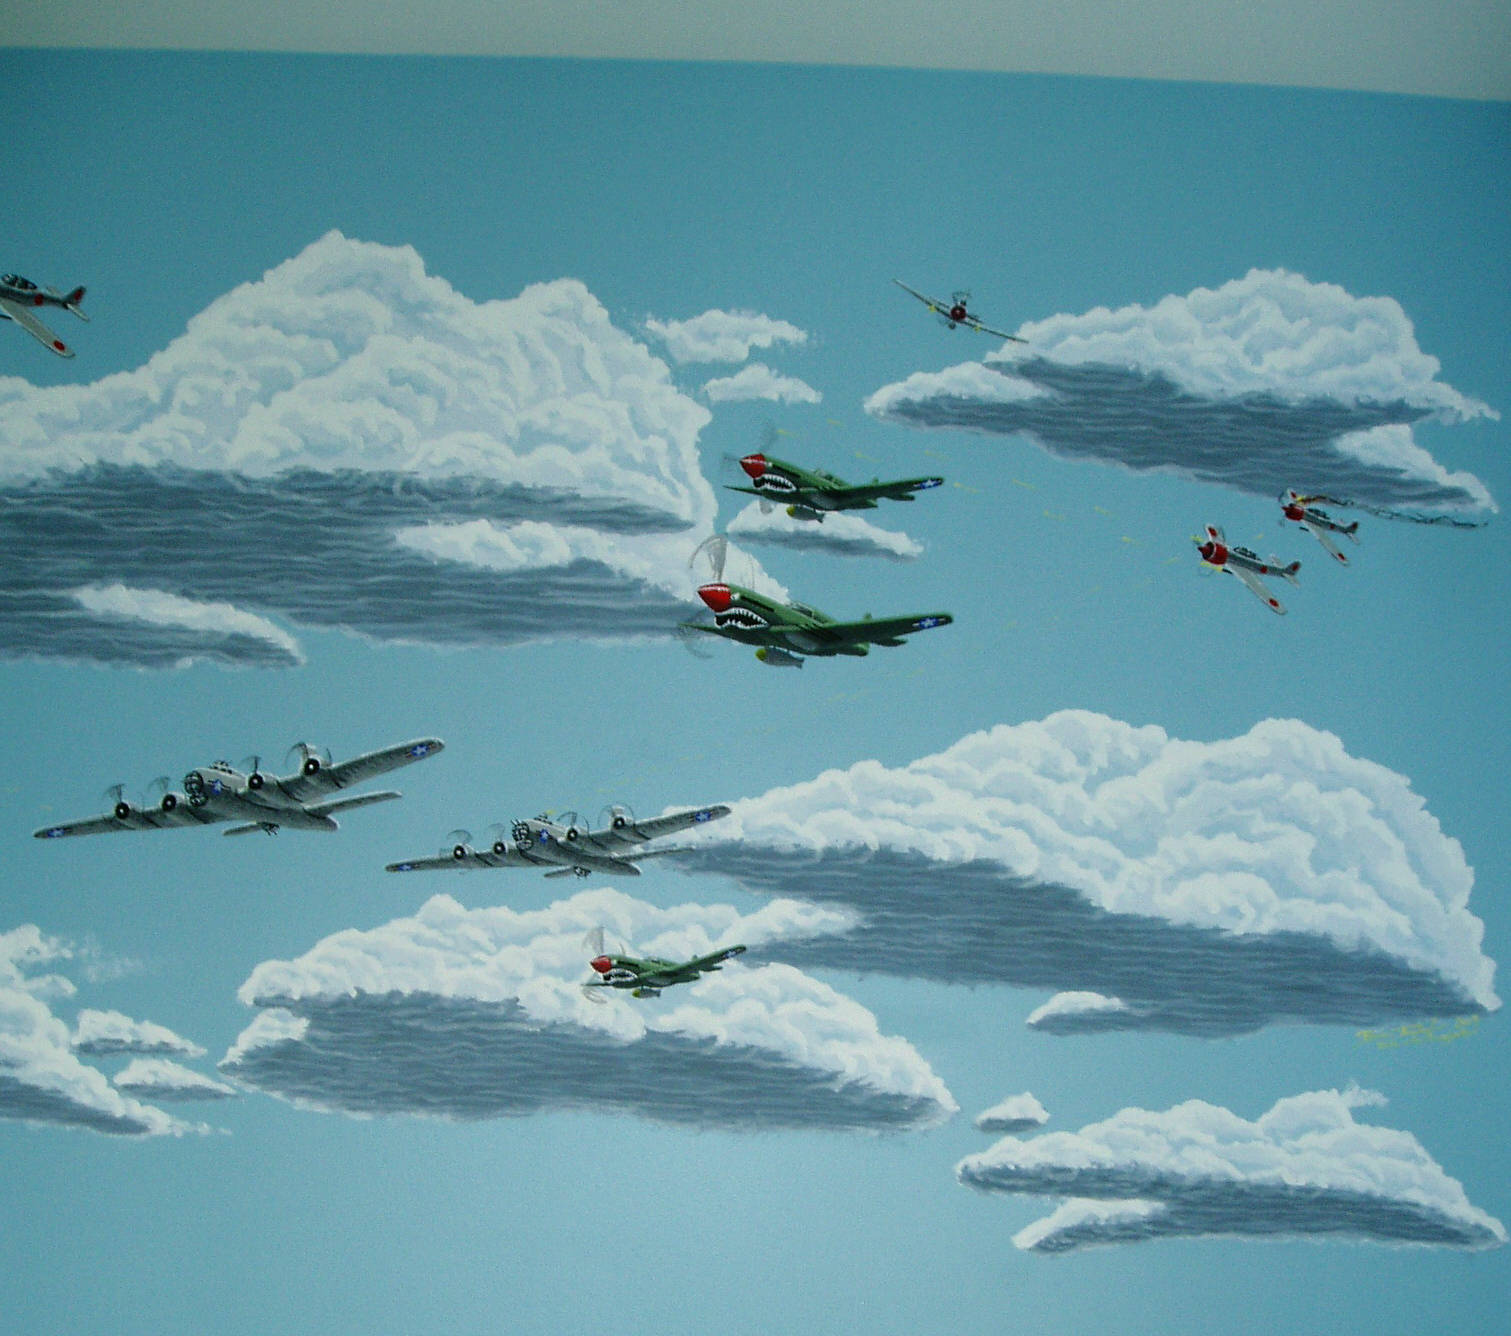 World War Ii Dogfight Mural